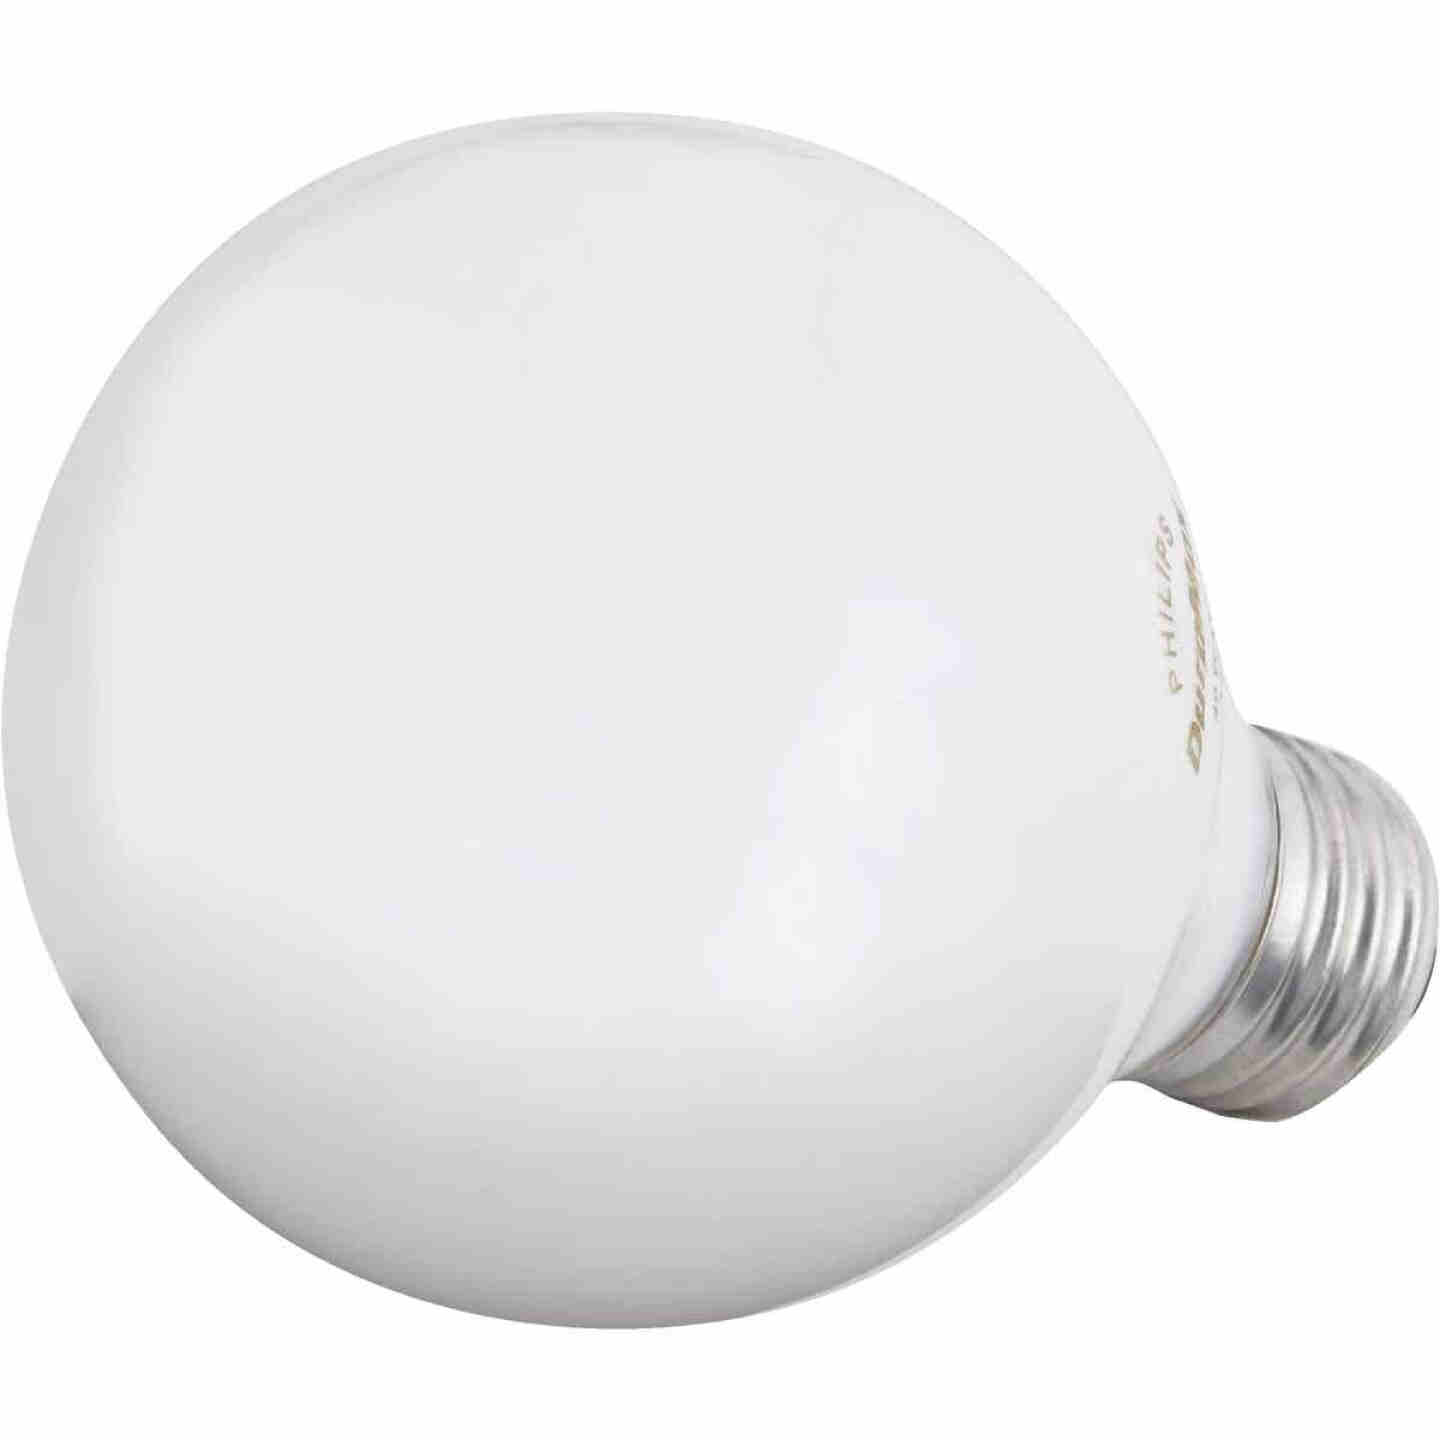 Philips DuraMax 40W Frosted Soft White Medium G25 Incandescent Globe Light Bulb Image 3